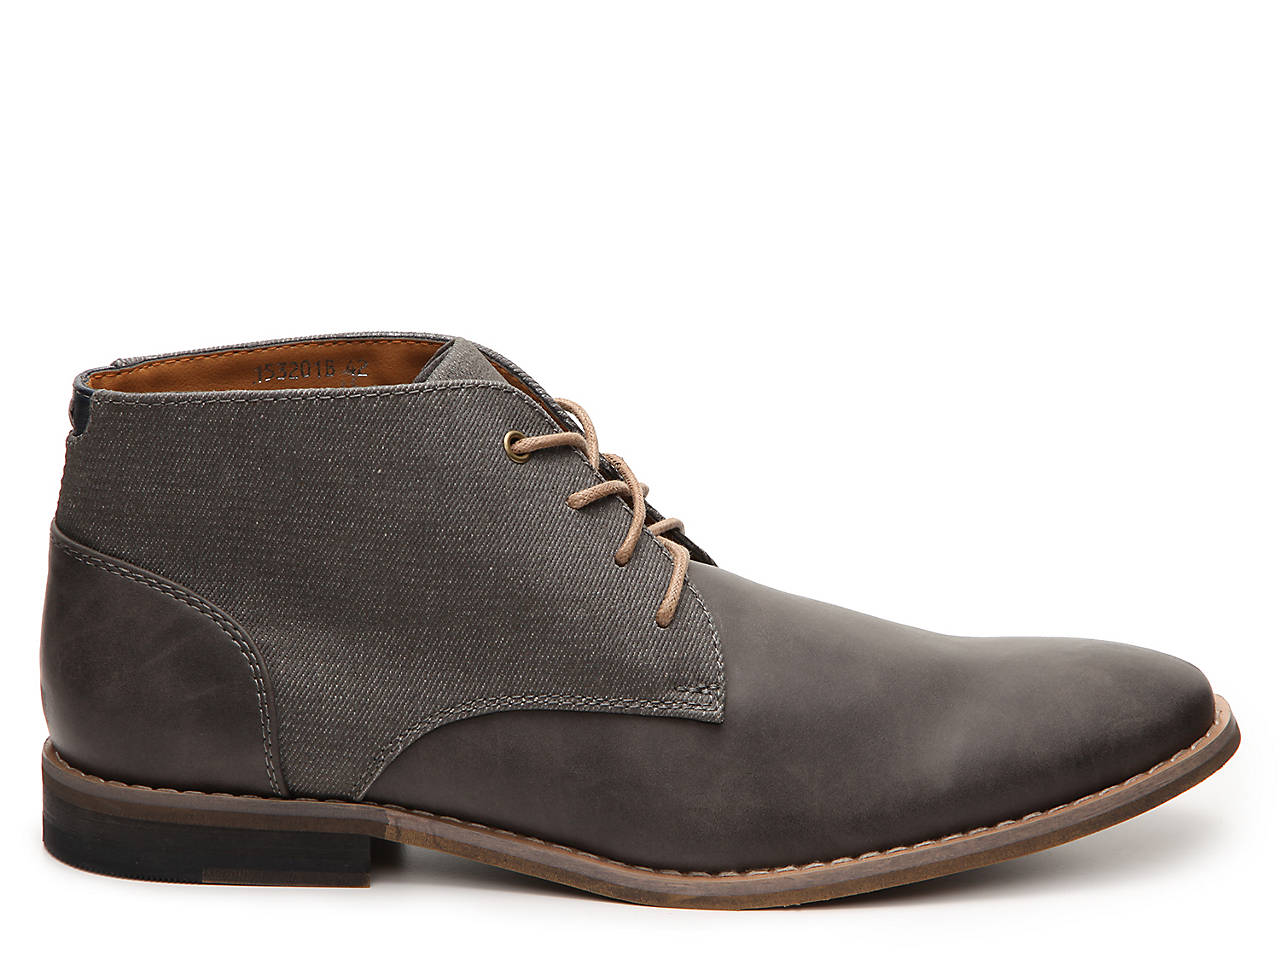 8157e75a1cb Seven 91 Ruben Chukka Boot Men s Shoes